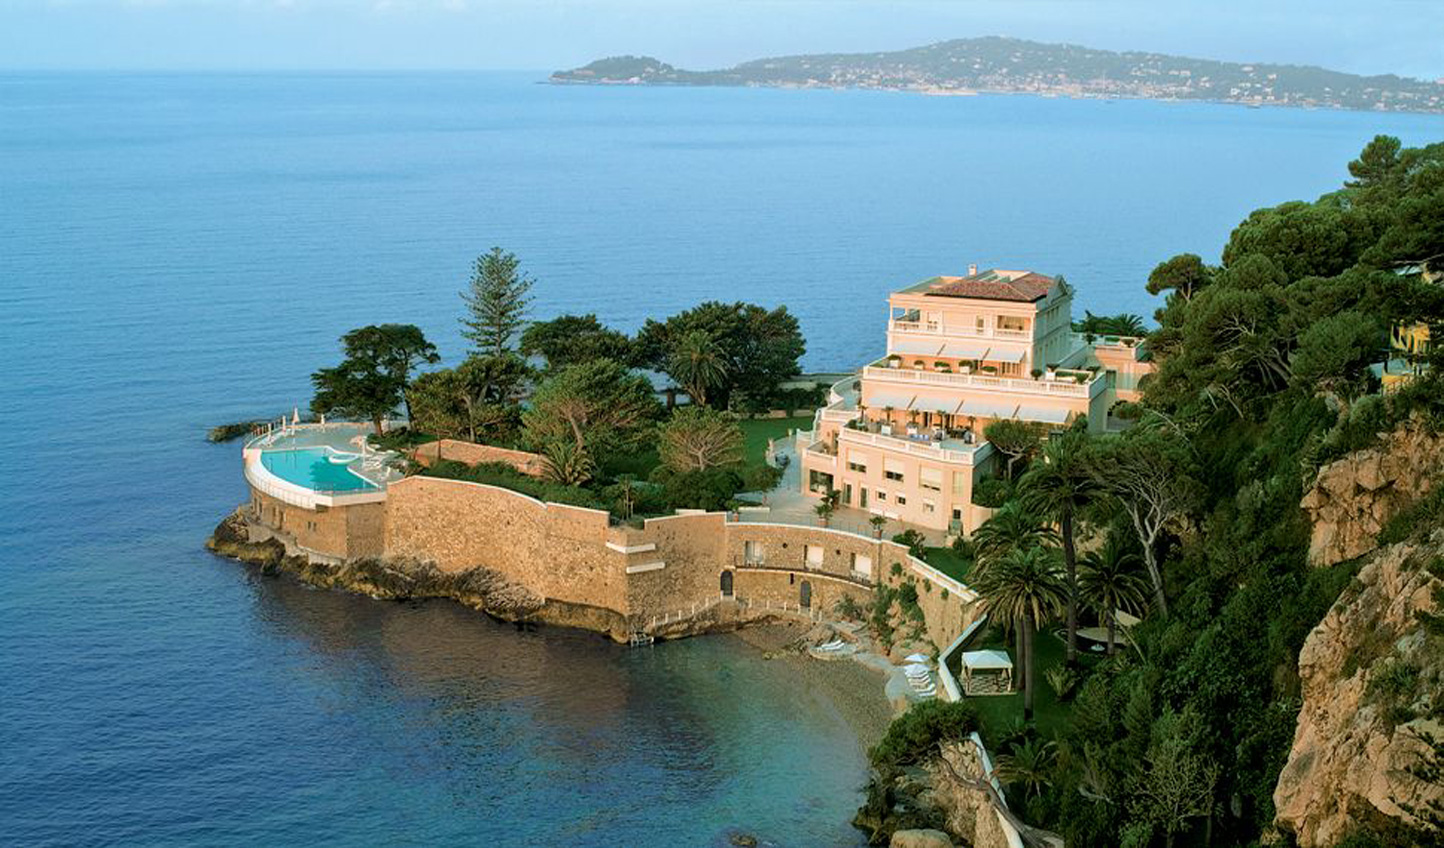 End your trip on a high at the romantic Cap Estel